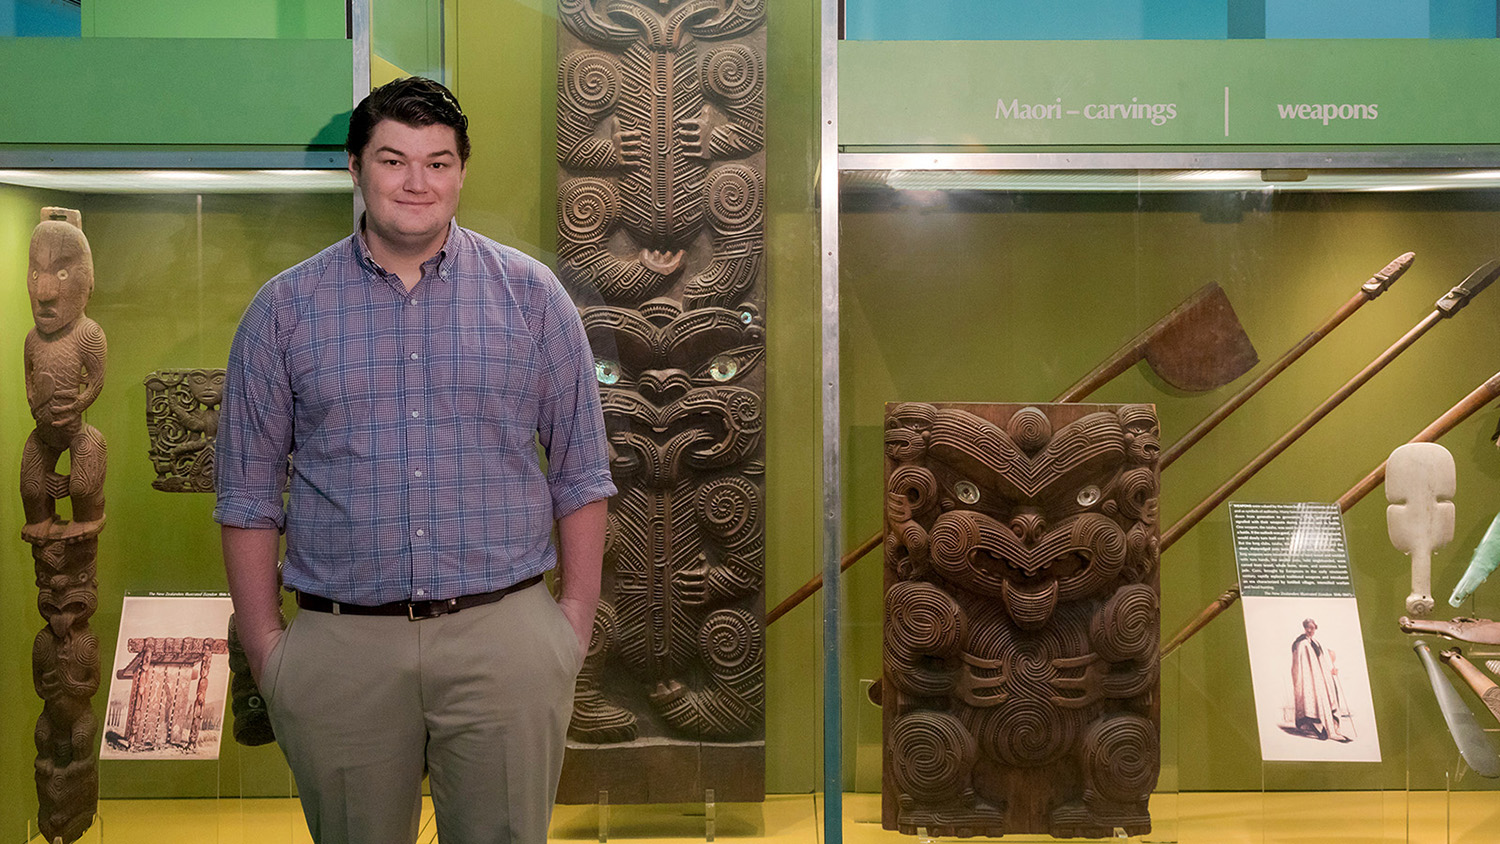 Colin Gravelle stands in front of an exhibit at the American Museum of Natural History